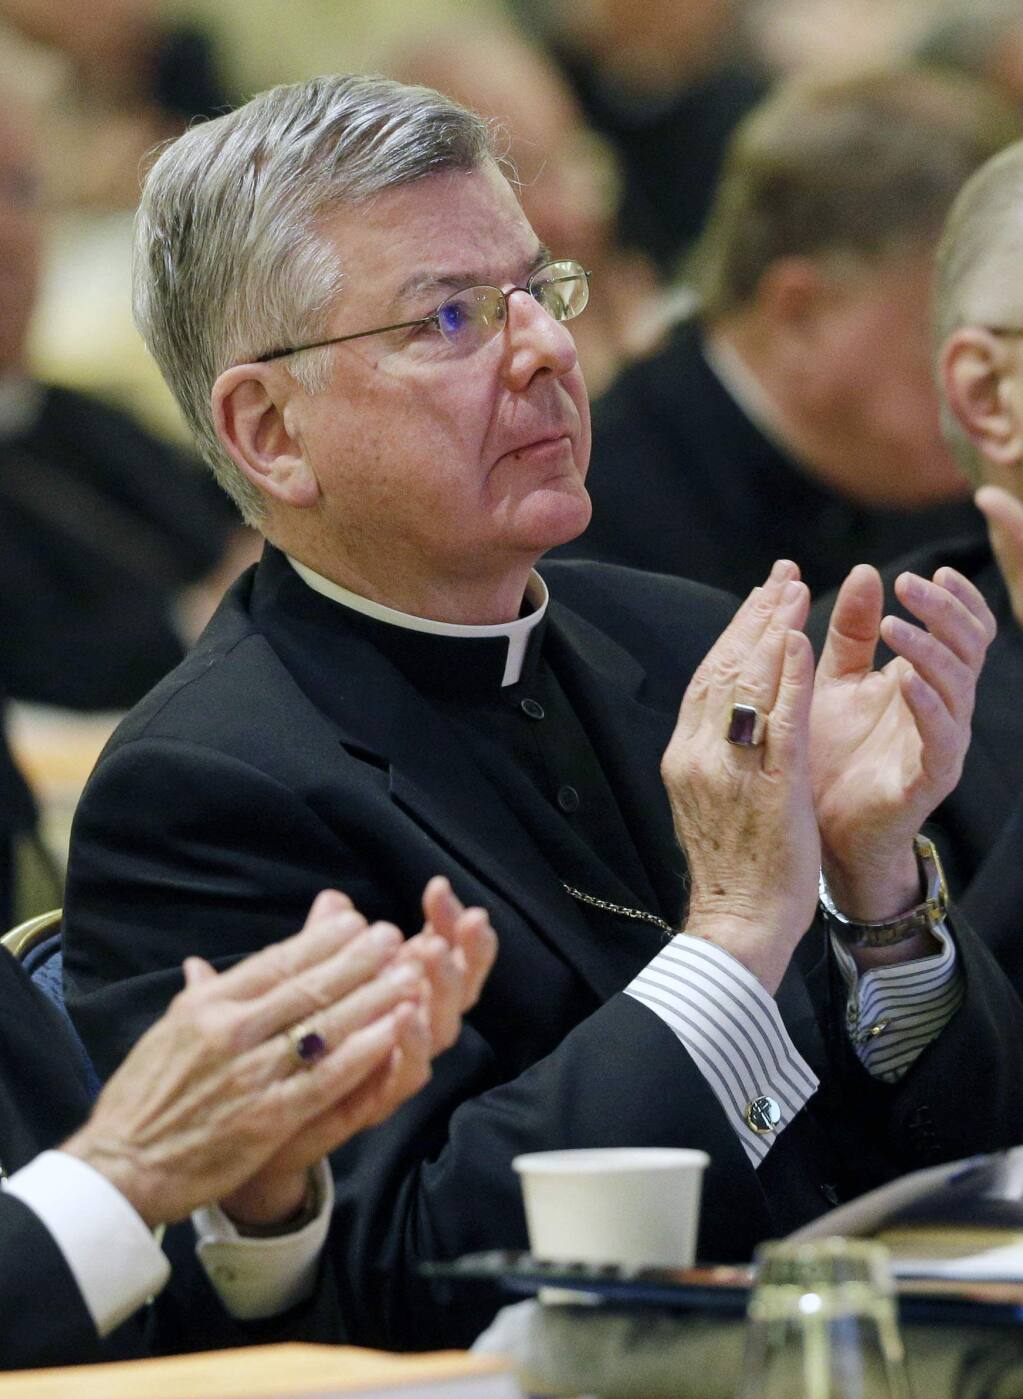 FILE - In this Nov. 12, 2013 file photo, Archbishop John Nienstedt, of St. Paul and Minneapolis, applauds after a presentation at the United States Conference of Catholic Bishops' annual fall meeting in Baltimore. Jennifer Haselberger, the whistleblower who took on the Archdiocese of St. Paul and Minneapolis about allegations of clergy sexual misconduct, said in an affidavit released Tuesday, July 15, 2014, that archbishops and staff ignored the 2002 pledge by Roman Catholic bishops to keep abusive clergy out of parishes. (AP Photo/Patrick Semansky, File)